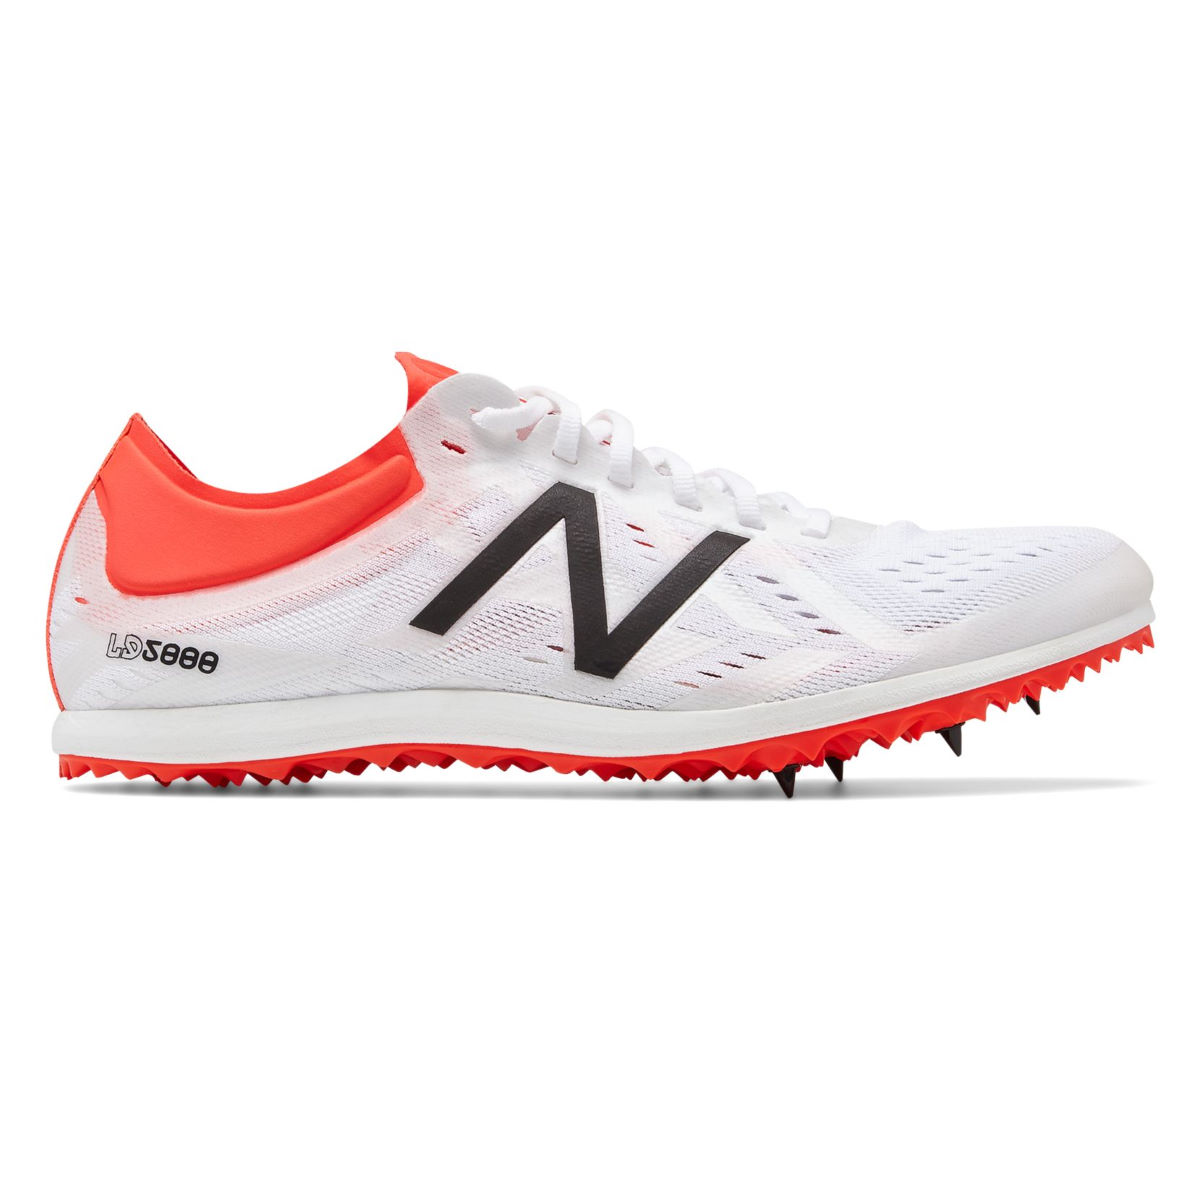 New Balance Women's LD5000 v5 Shoes - Zapatillas de atletismo